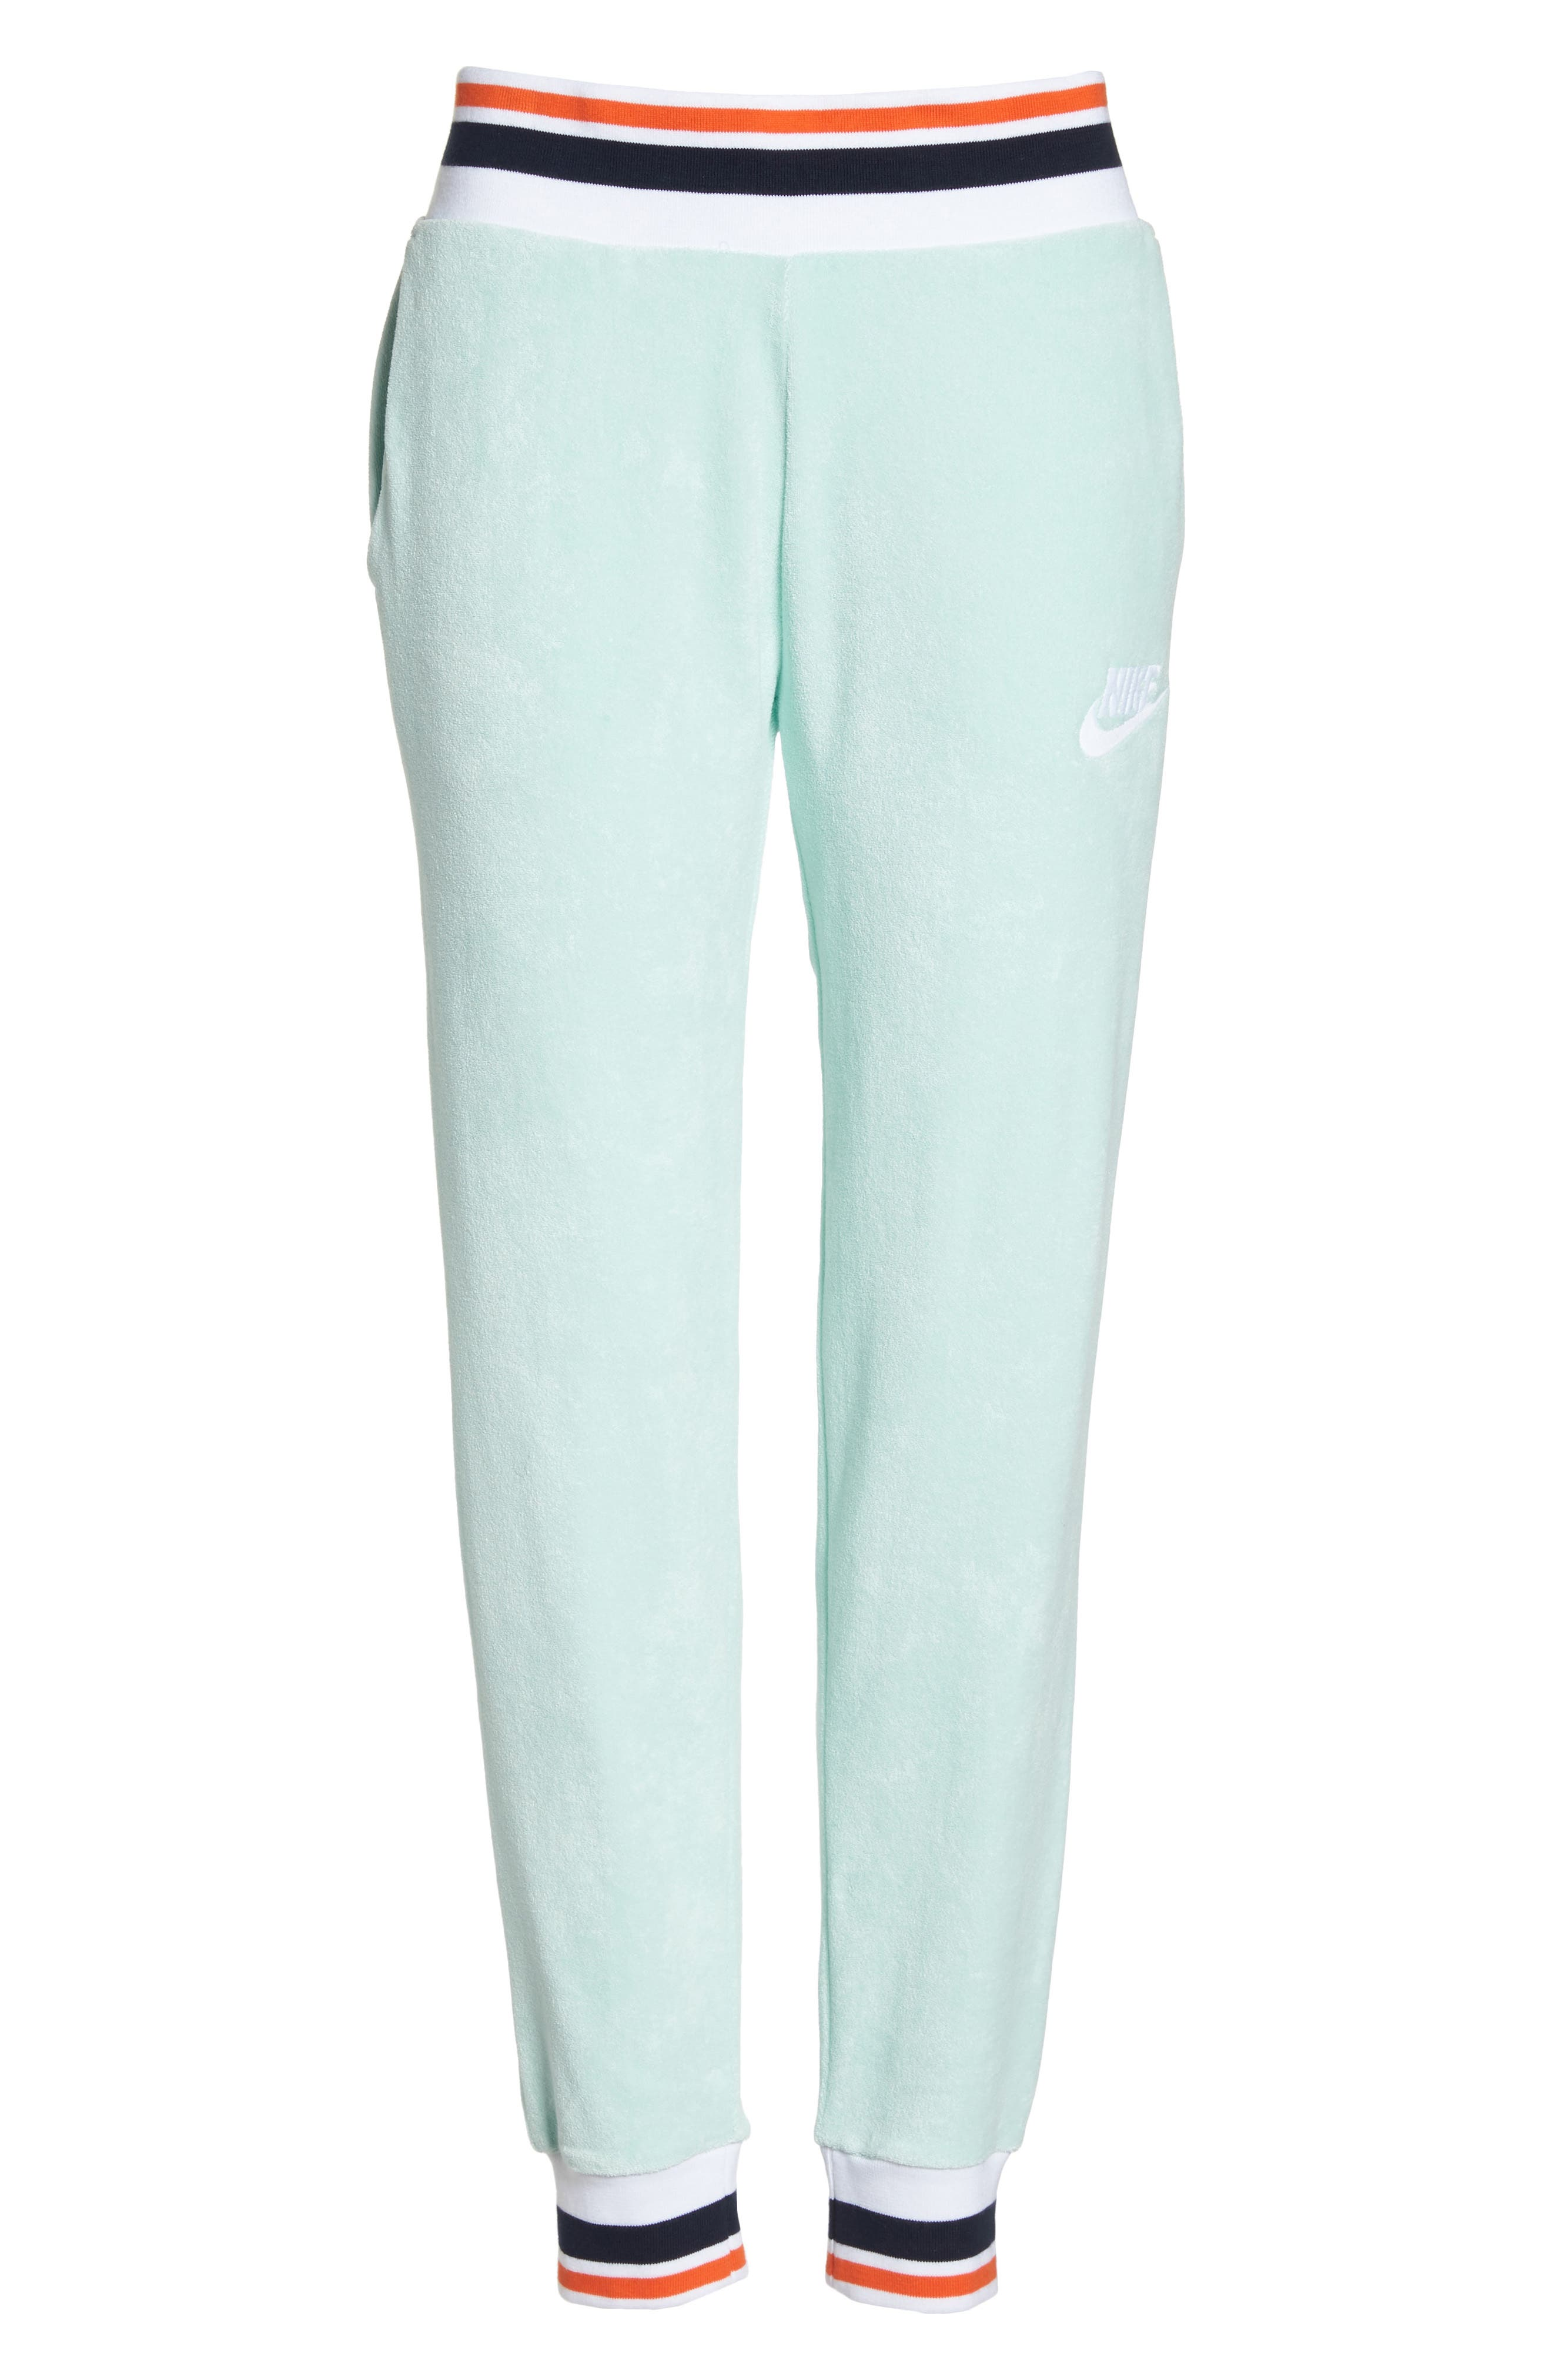 Sportswear French Terry Pants,                             Alternate thumbnail 8, color,                             Igloo/ White